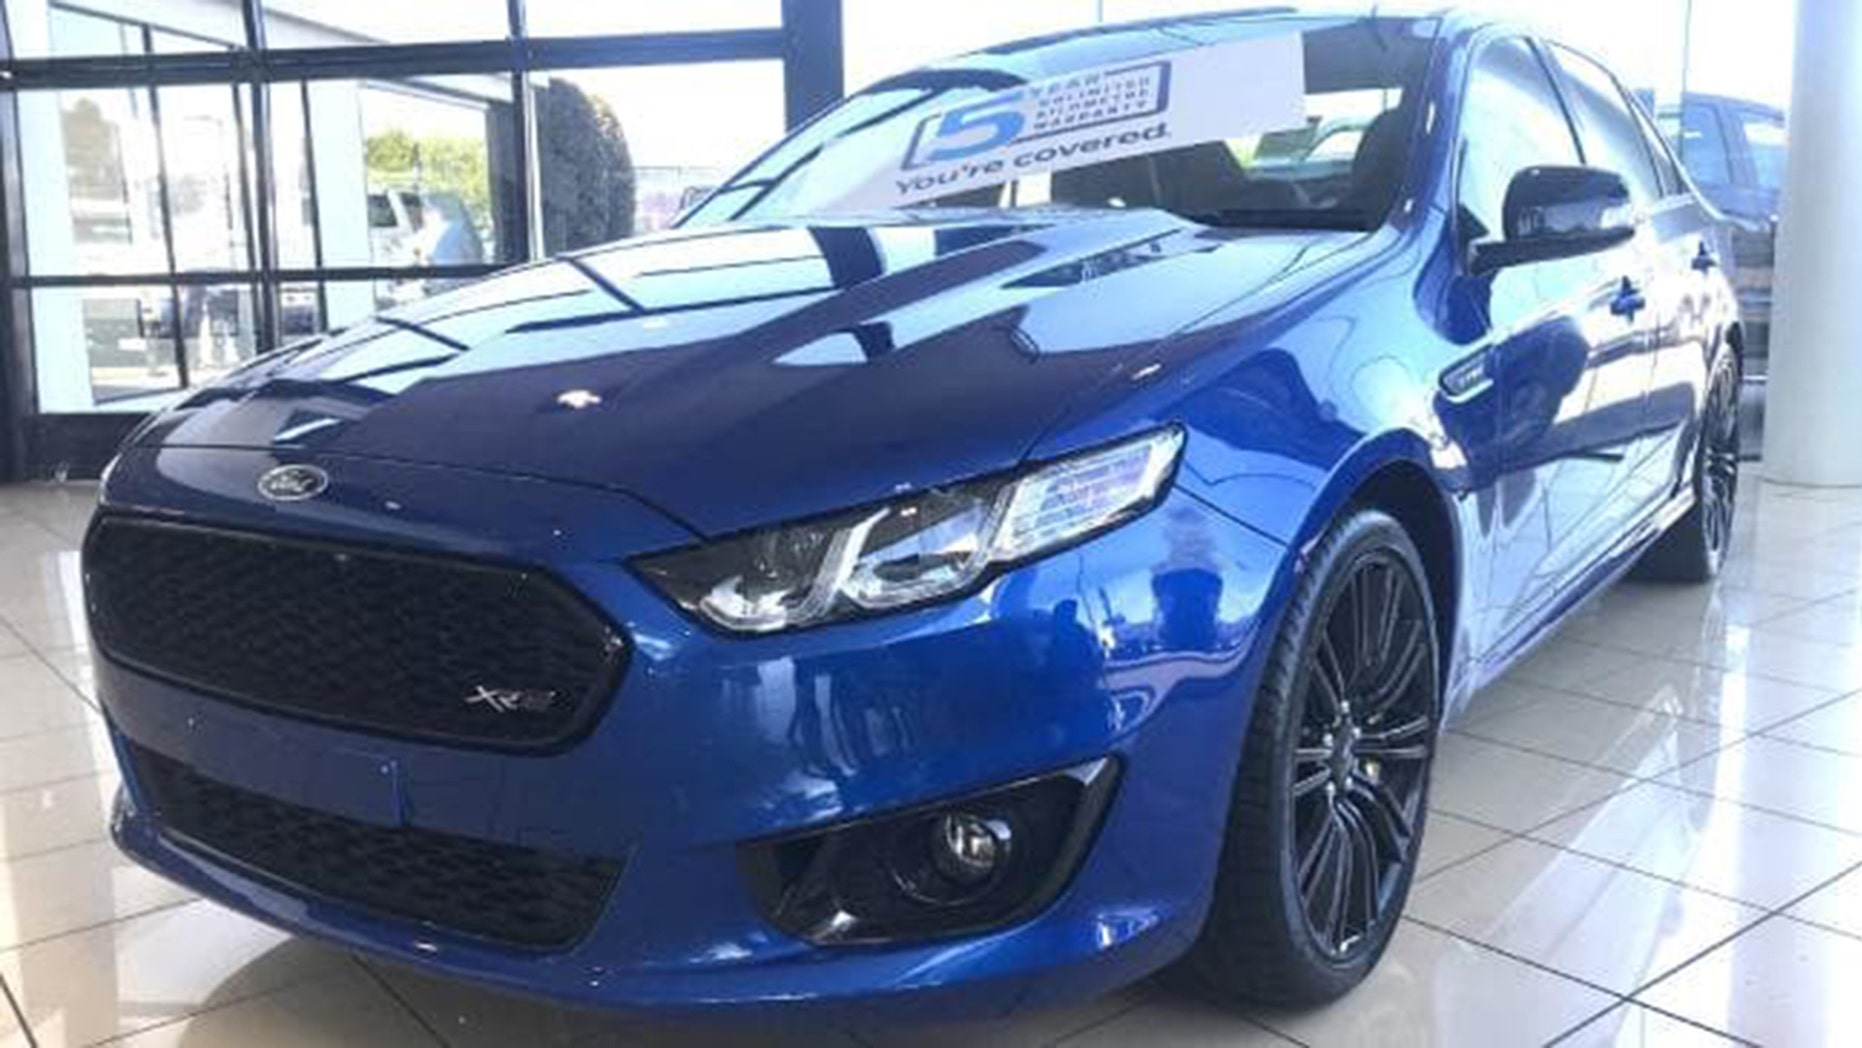 Last new ford falcon found in dealers garage